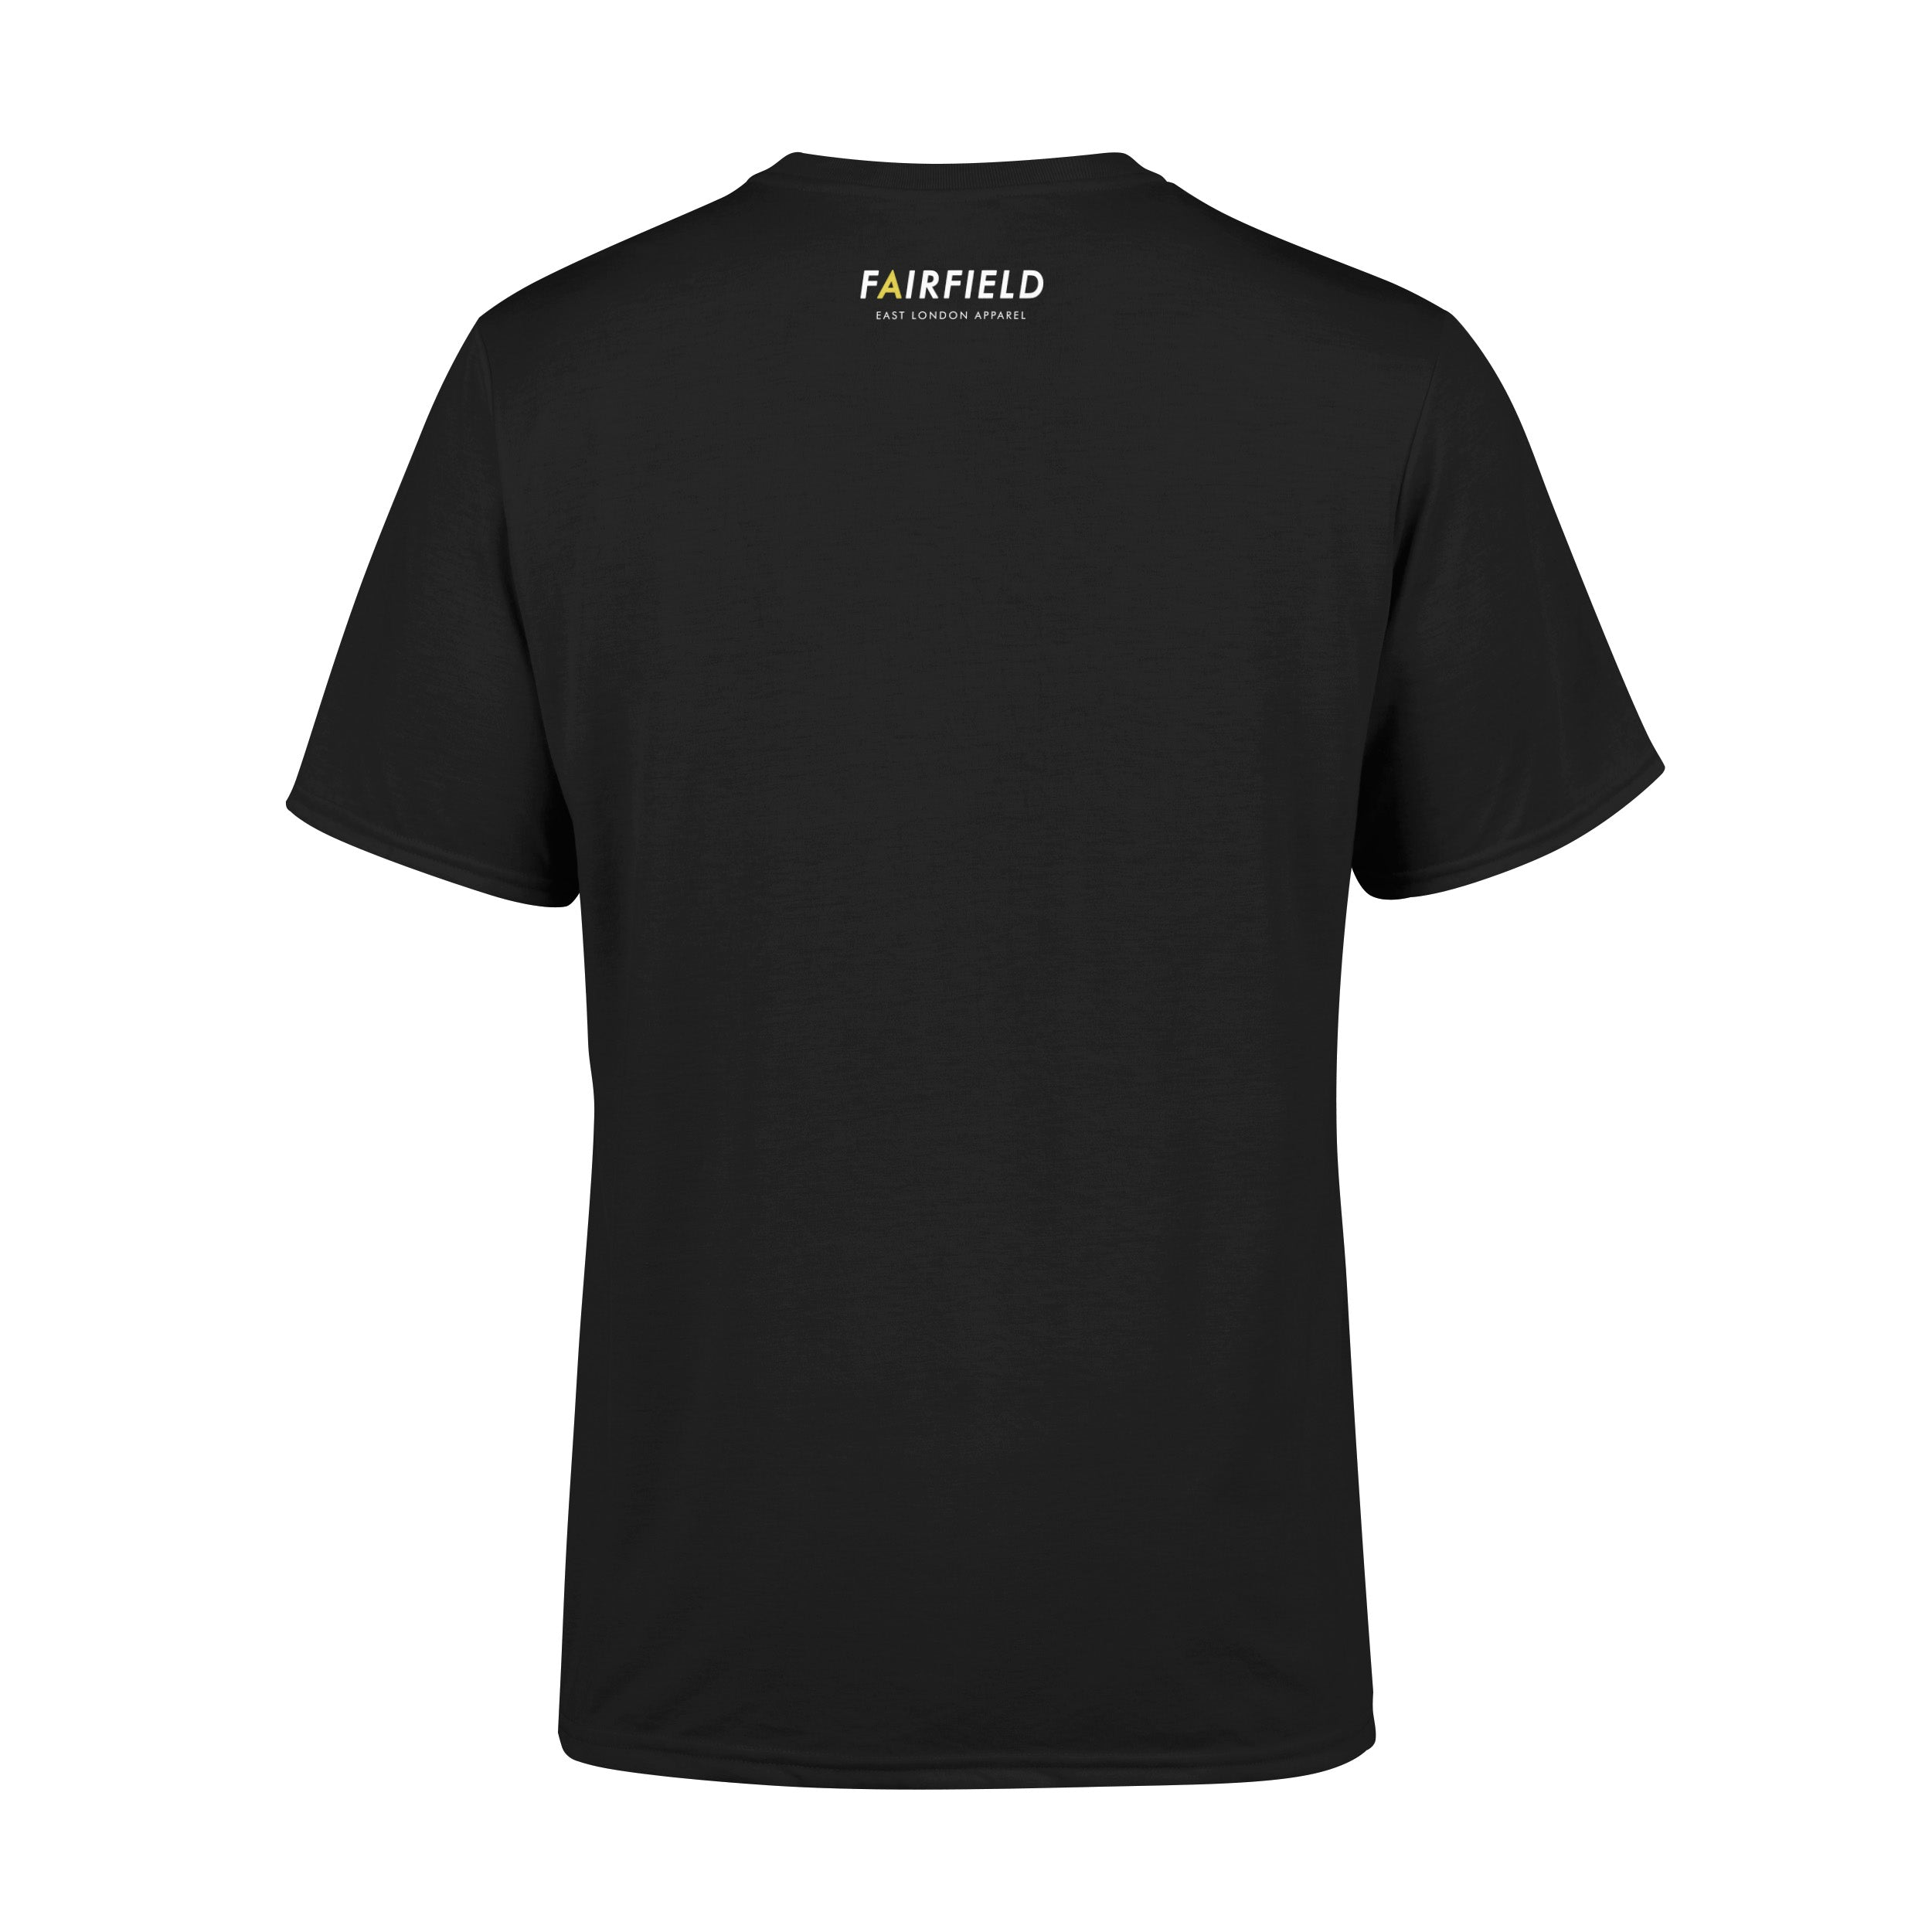 E3STLDN Gold T-shirt